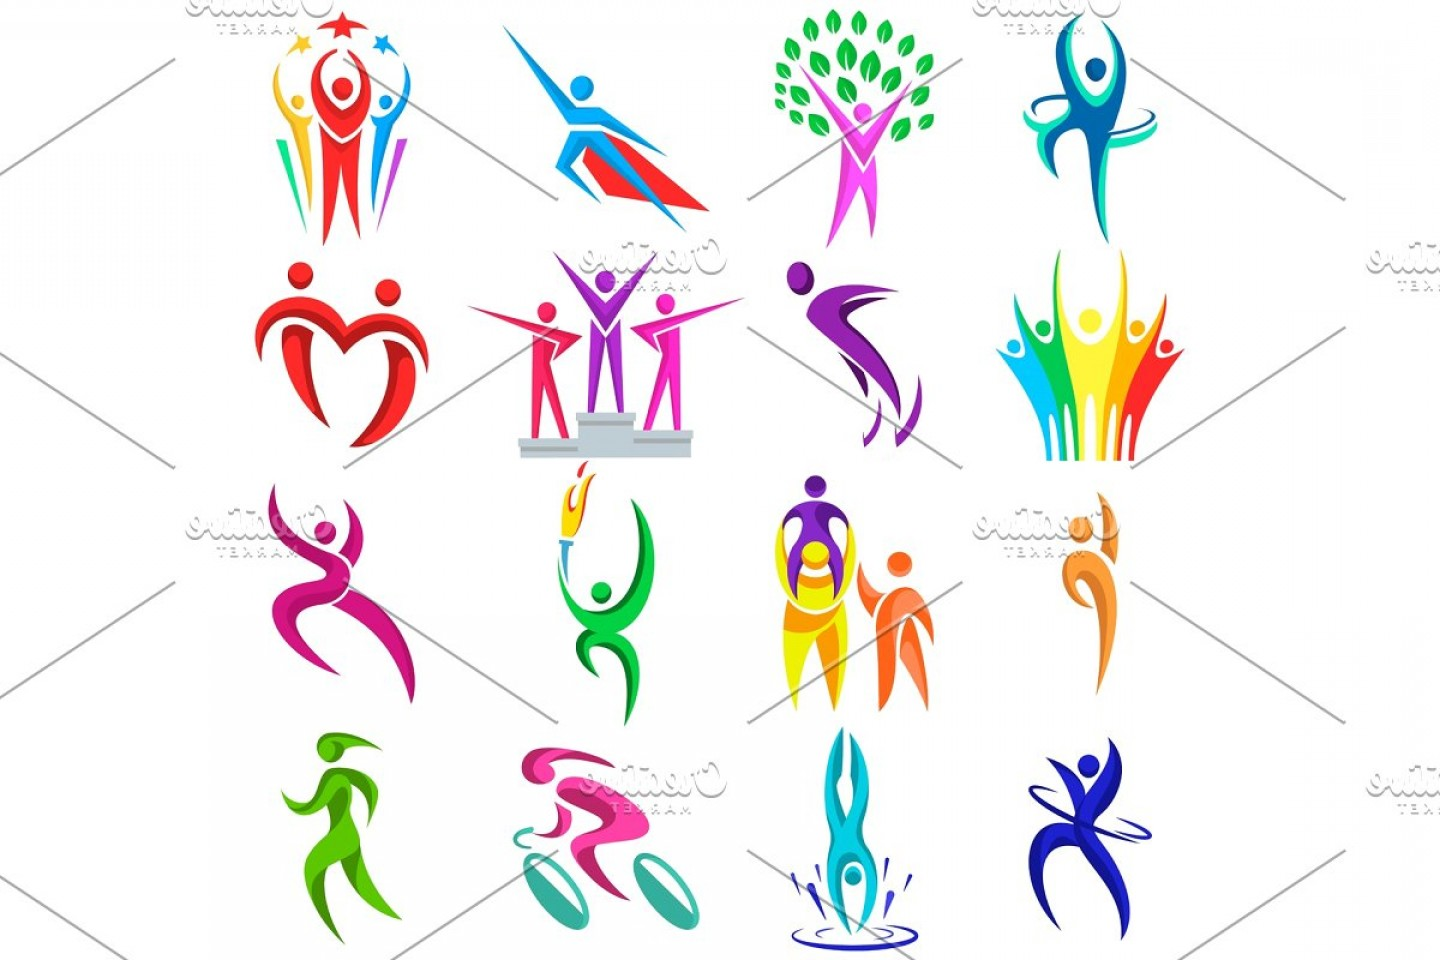 Sport Vector Art Games: People Logo Sport Vector Fitness Logotype Sportsman Winner And Competition Icons Illustration Isolated People Silhouette On Whit